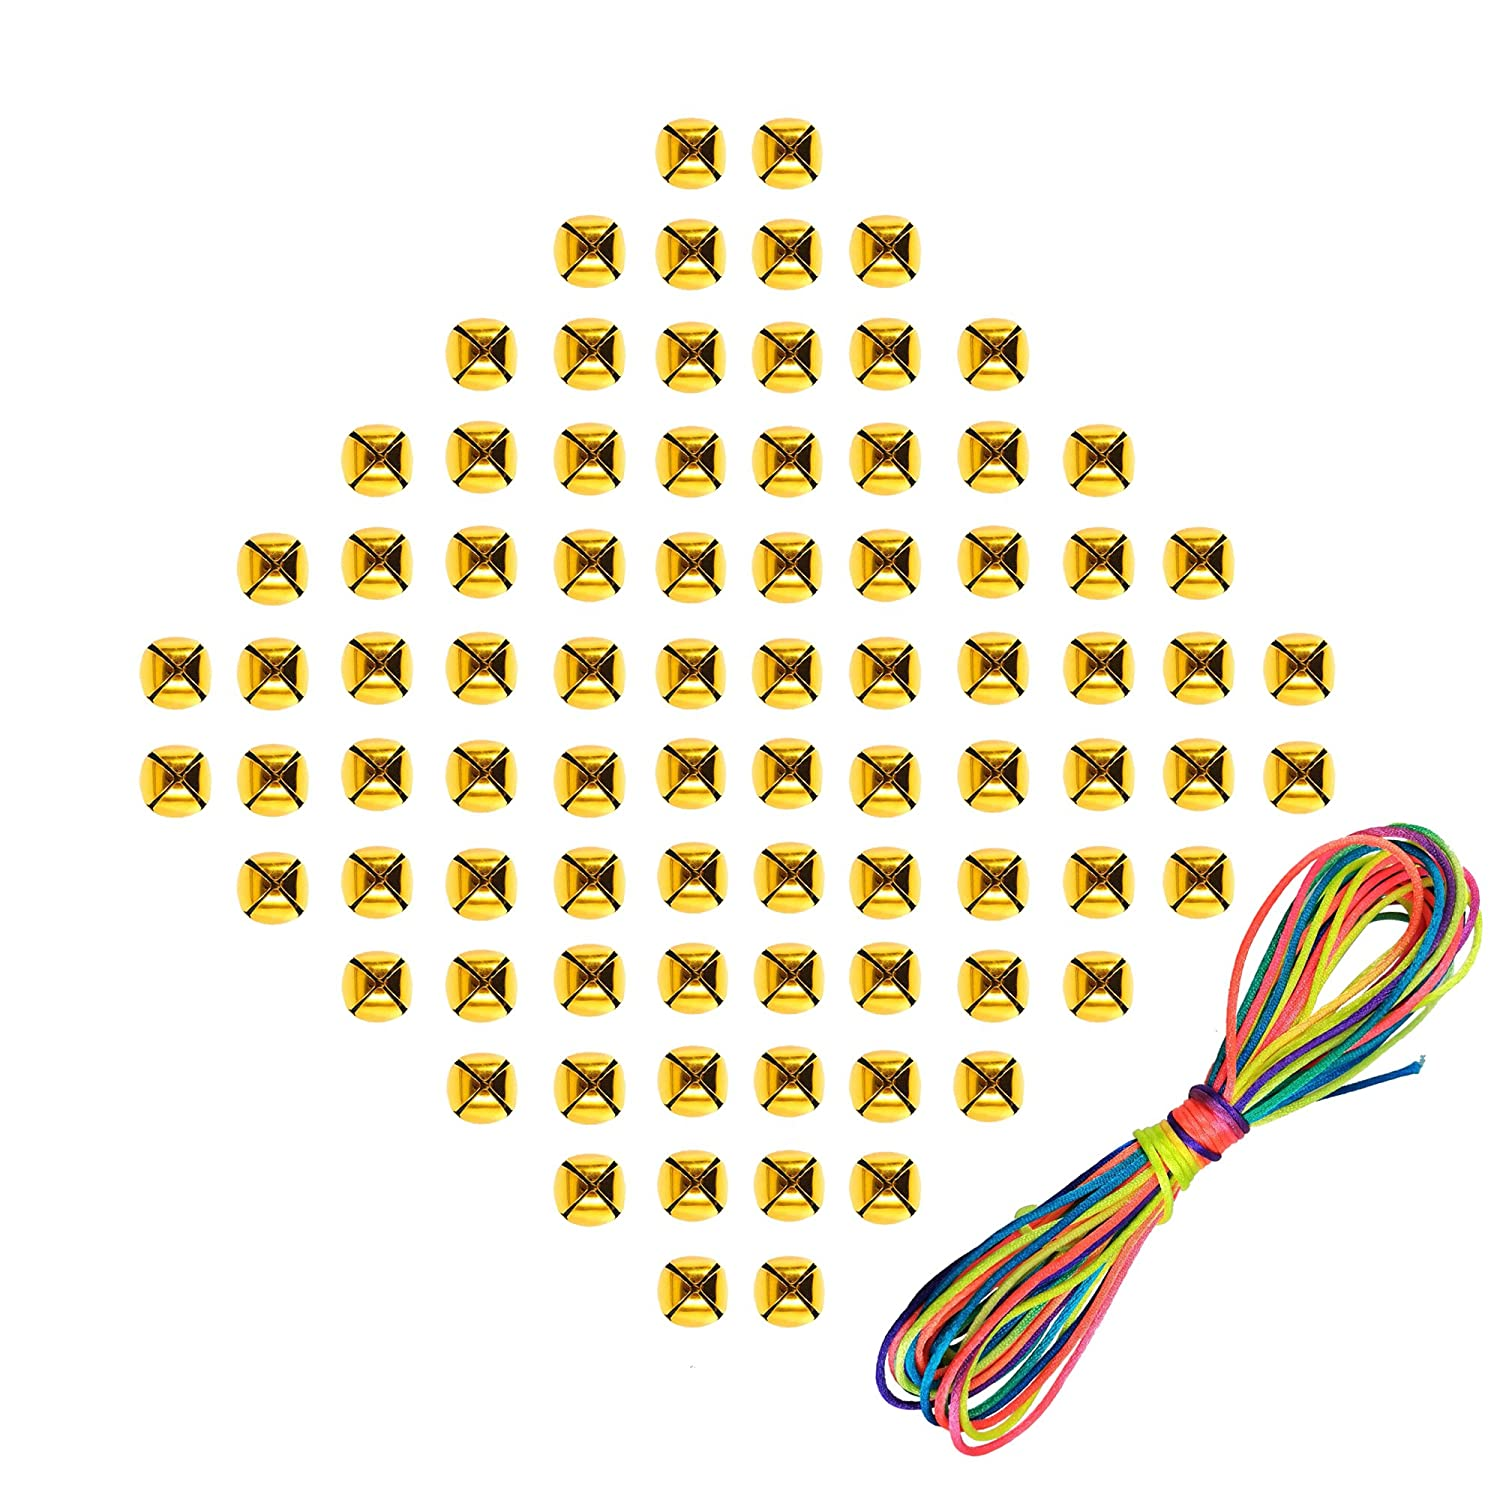 180 Pcs Christmas Gold Small Jingle Bells for DIY Crafts Charms Jewelry Home Decoration with 6-Meter Rainbow Cords, 1/2 inch by SKYCOOOOL